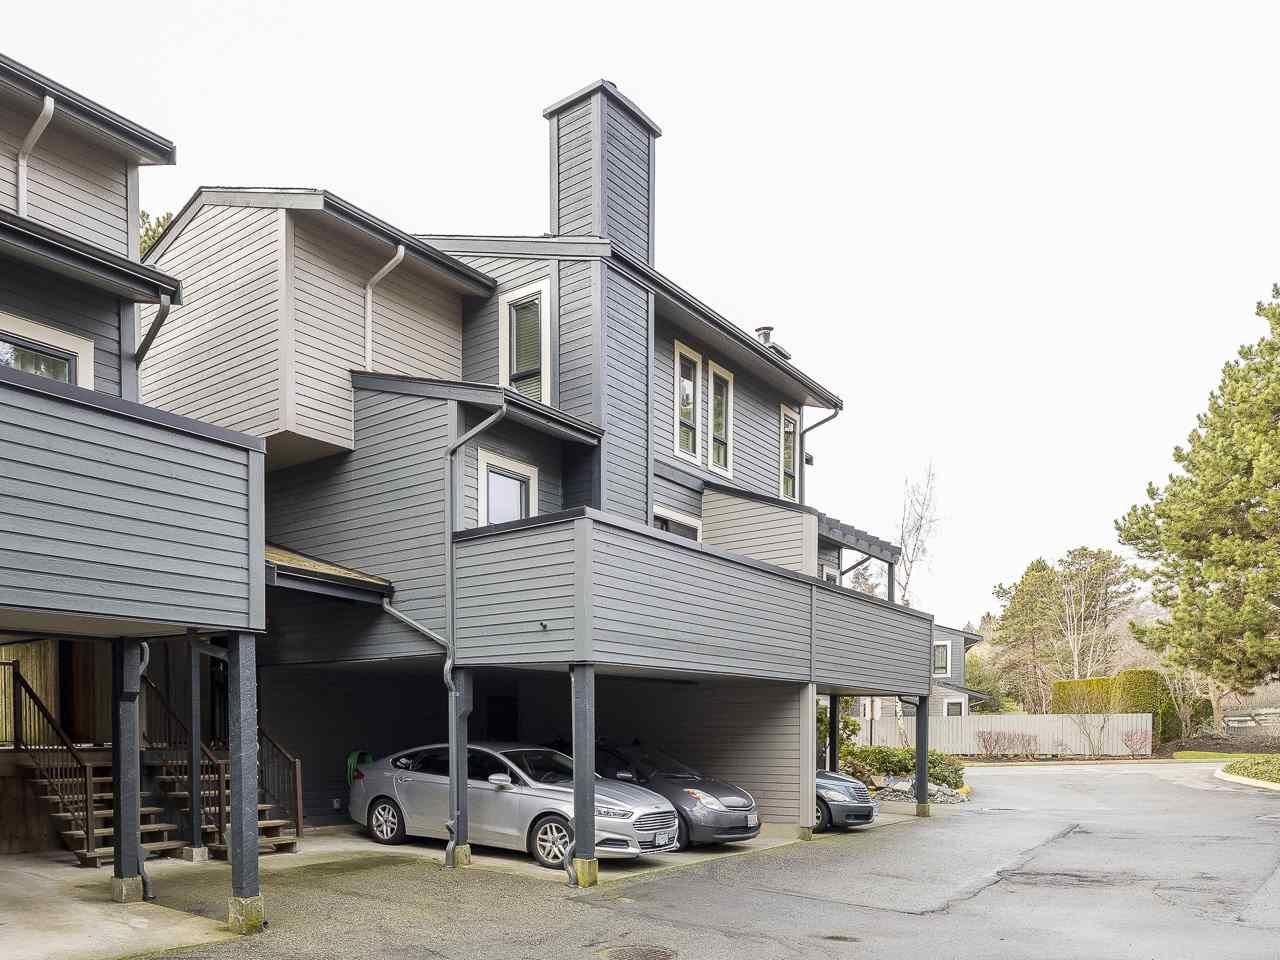 """Main Photo: 7366 PINNACLE Court in Vancouver: Champlain Heights Townhouse for sale in """"Parklane"""" (Vancouver East)  : MLS®# R2542021"""